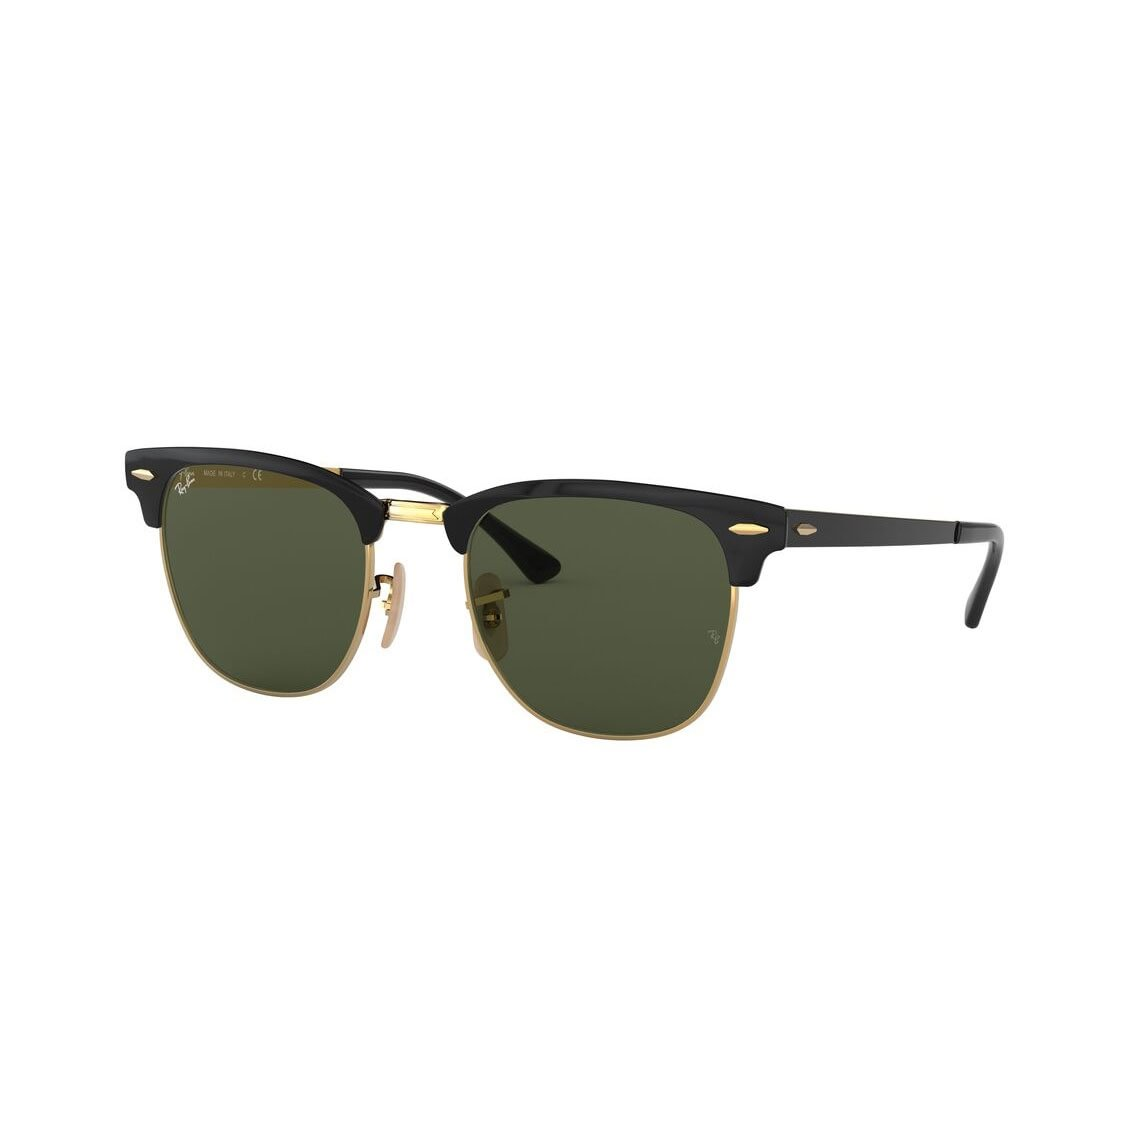 Ray-Ban Clubmaster Metal RB3716 187 51